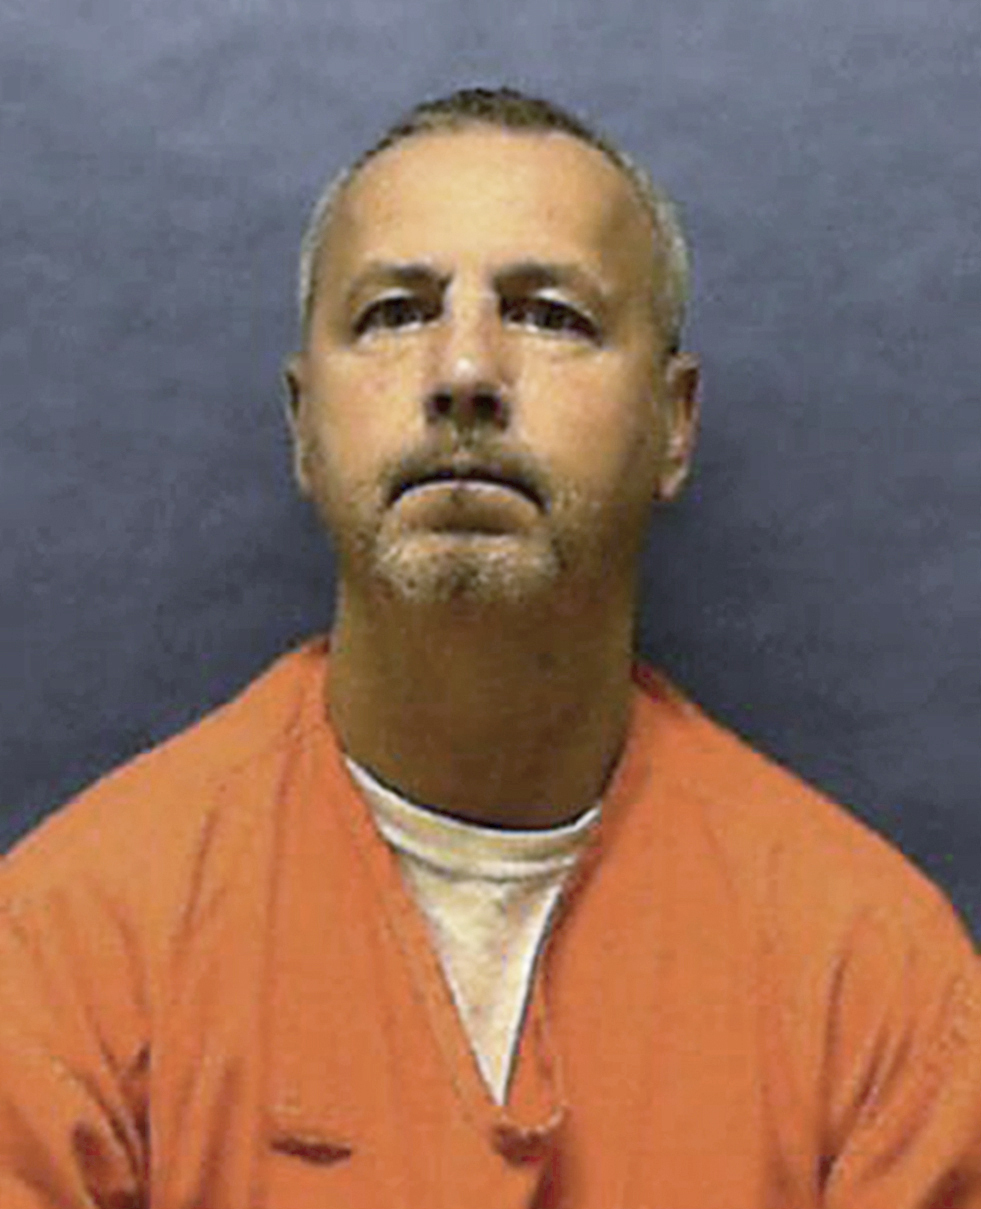 The Latest: Serial killer who preyed on gay men executed